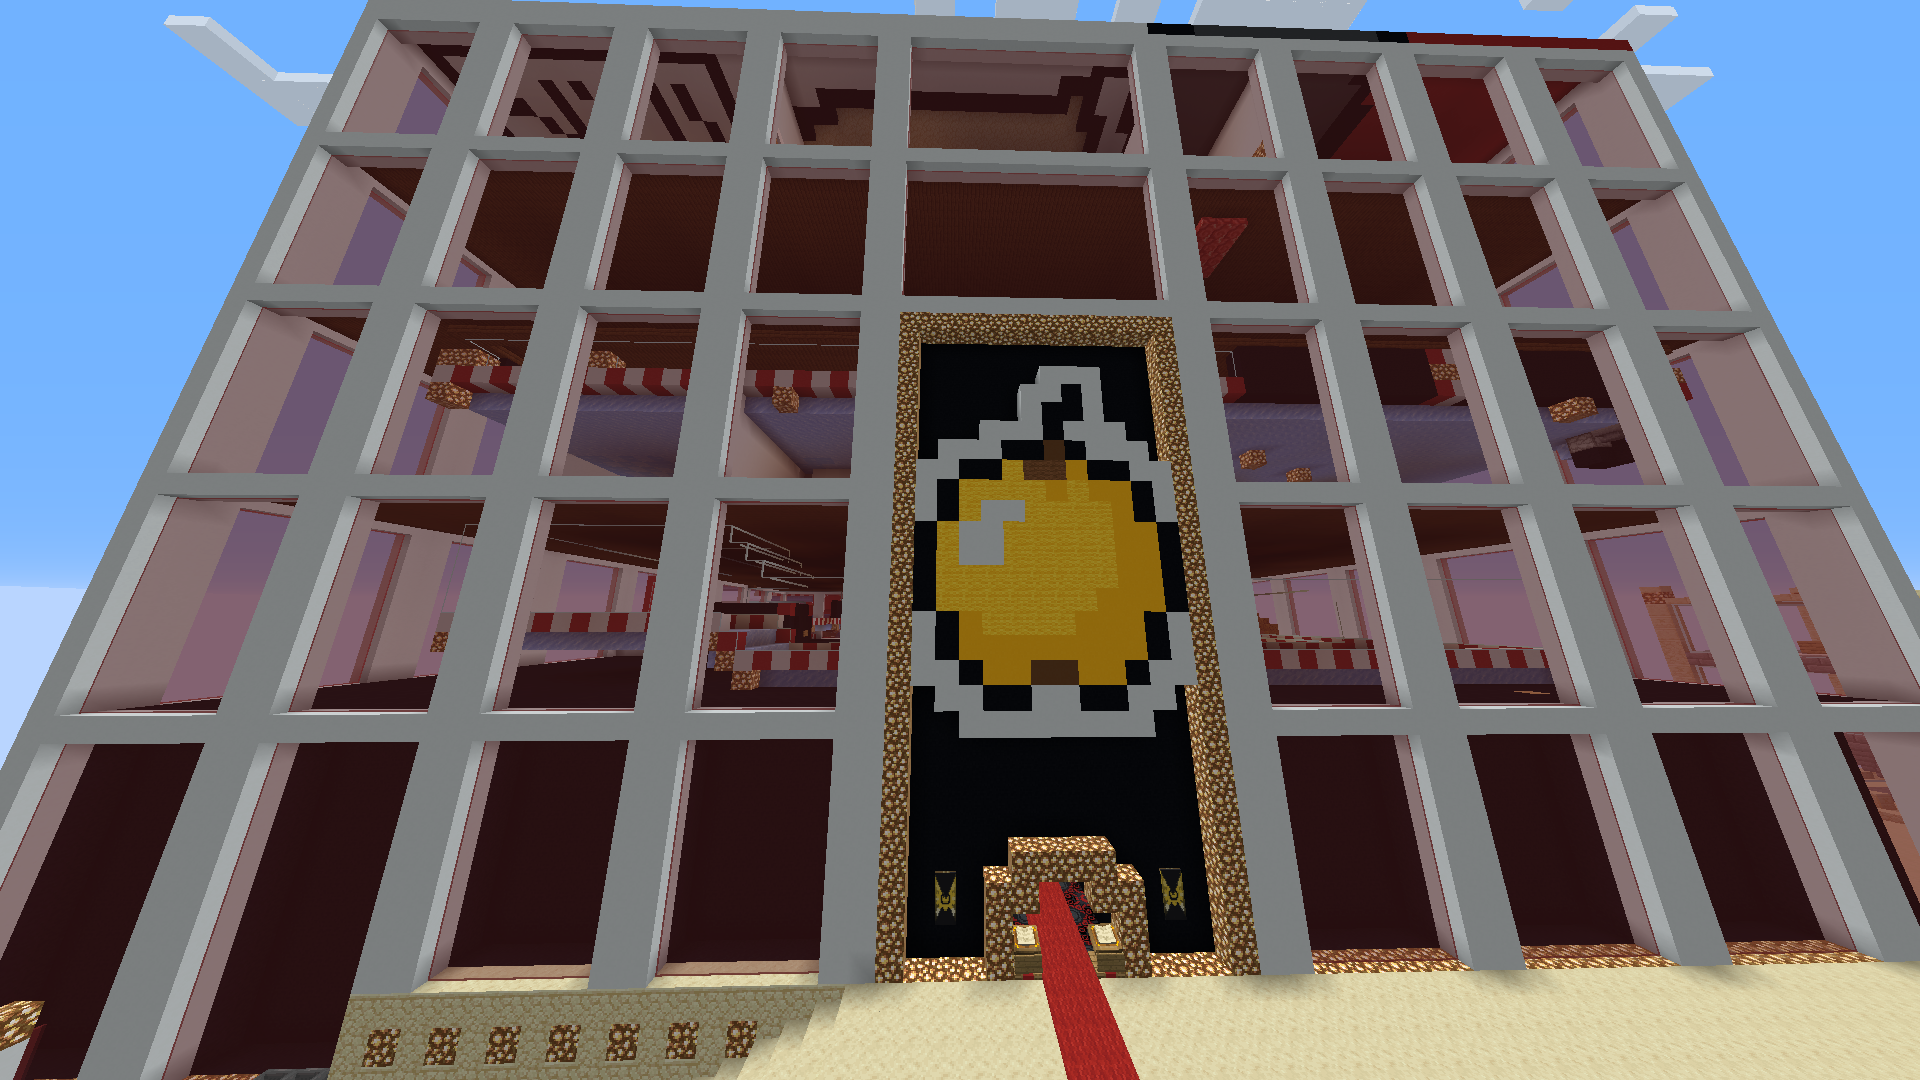 The Golden Apple Incorporated